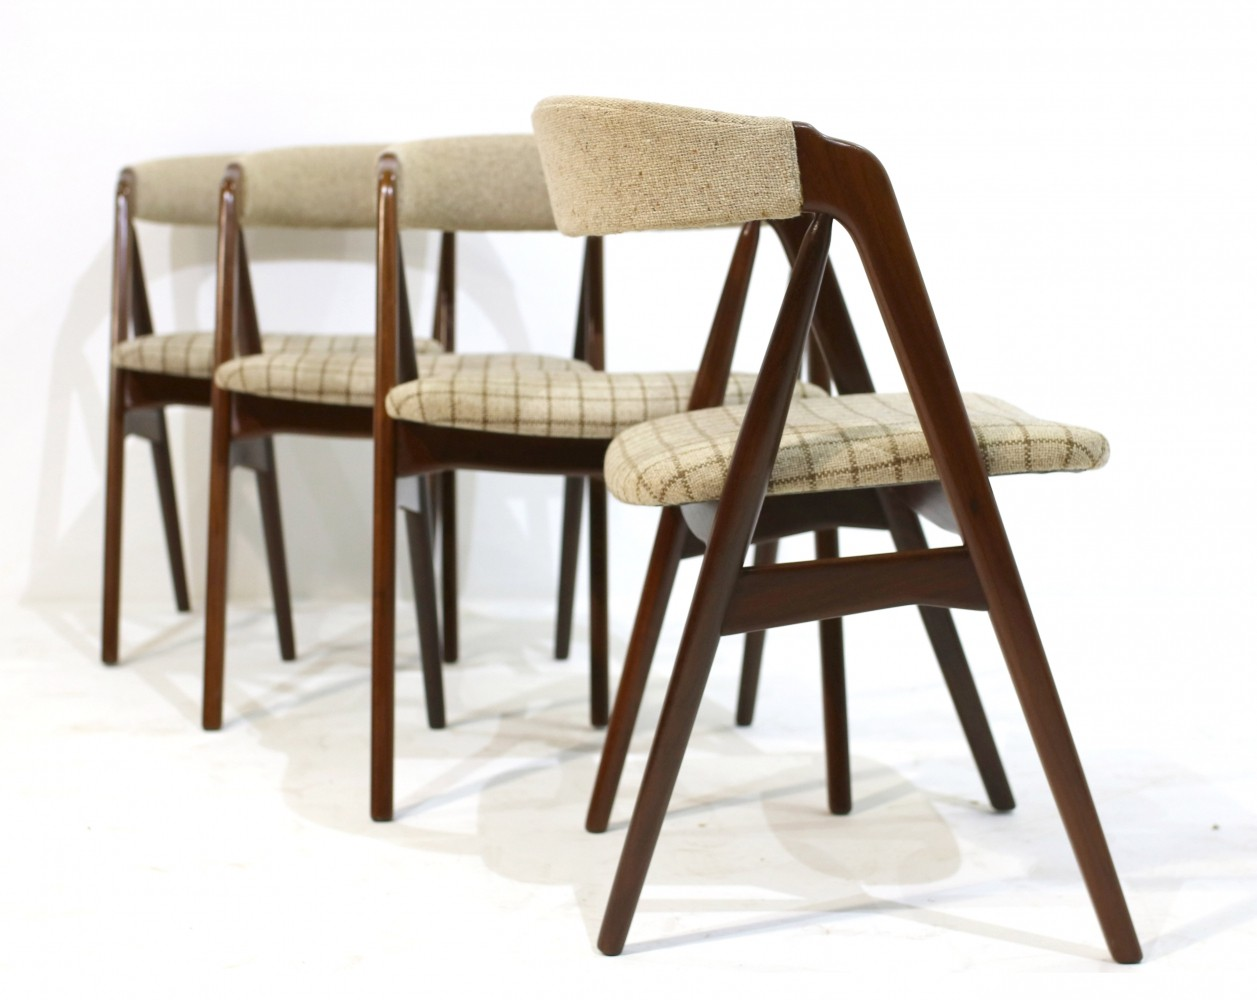 Set of 4 Mid-Century Danish Teak Chairs by Th. Harlev for Farstrup Møbler, 1950s